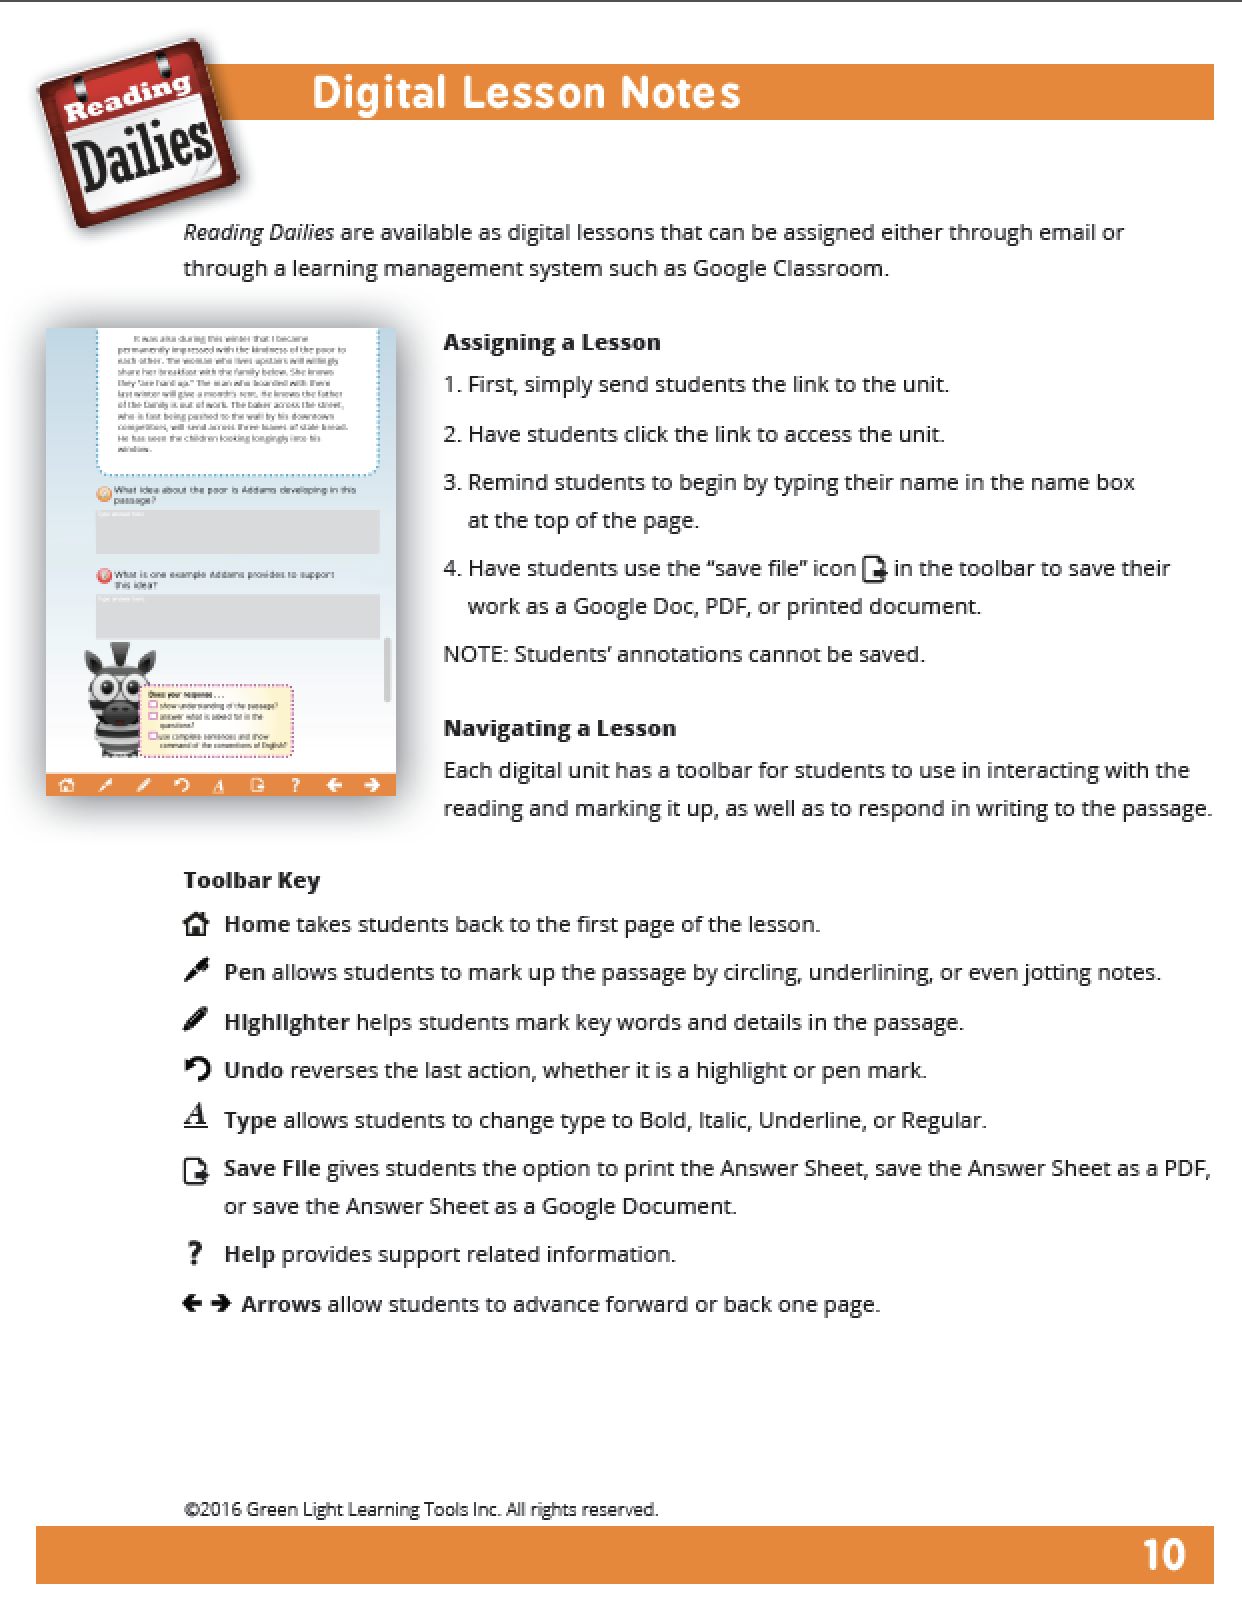 Worksheet Grade 4 Reading reading dailies grade 4 teachers guide store 4